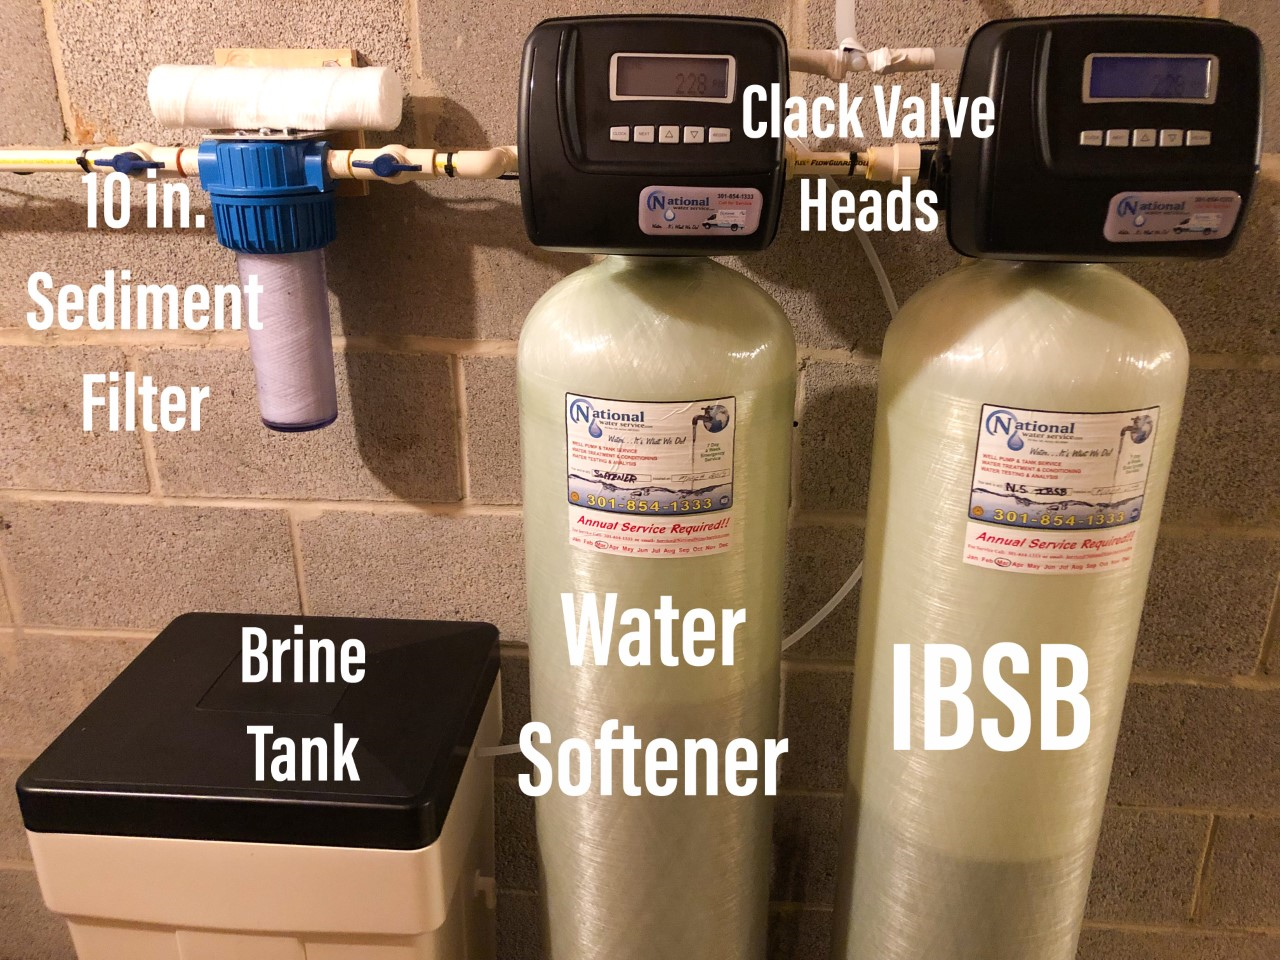 We Installed A Watersoftener Brine Tank For Hard Water A